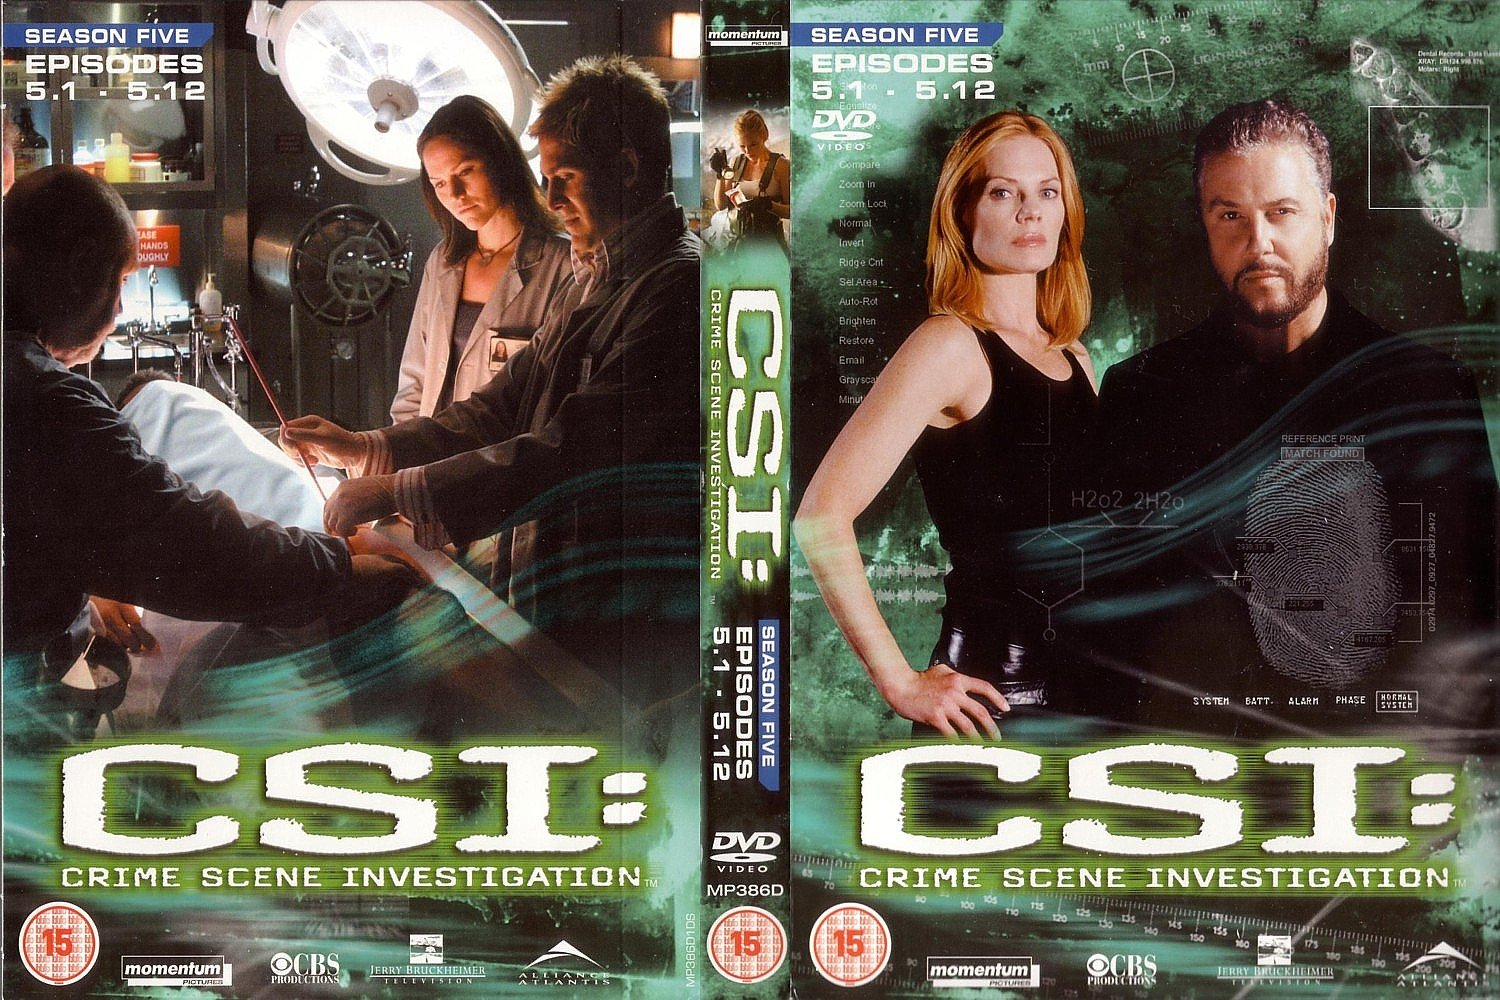 C_S_I_Season_5_Episodes_1-12-[cdcovers_cc]-front.jpg